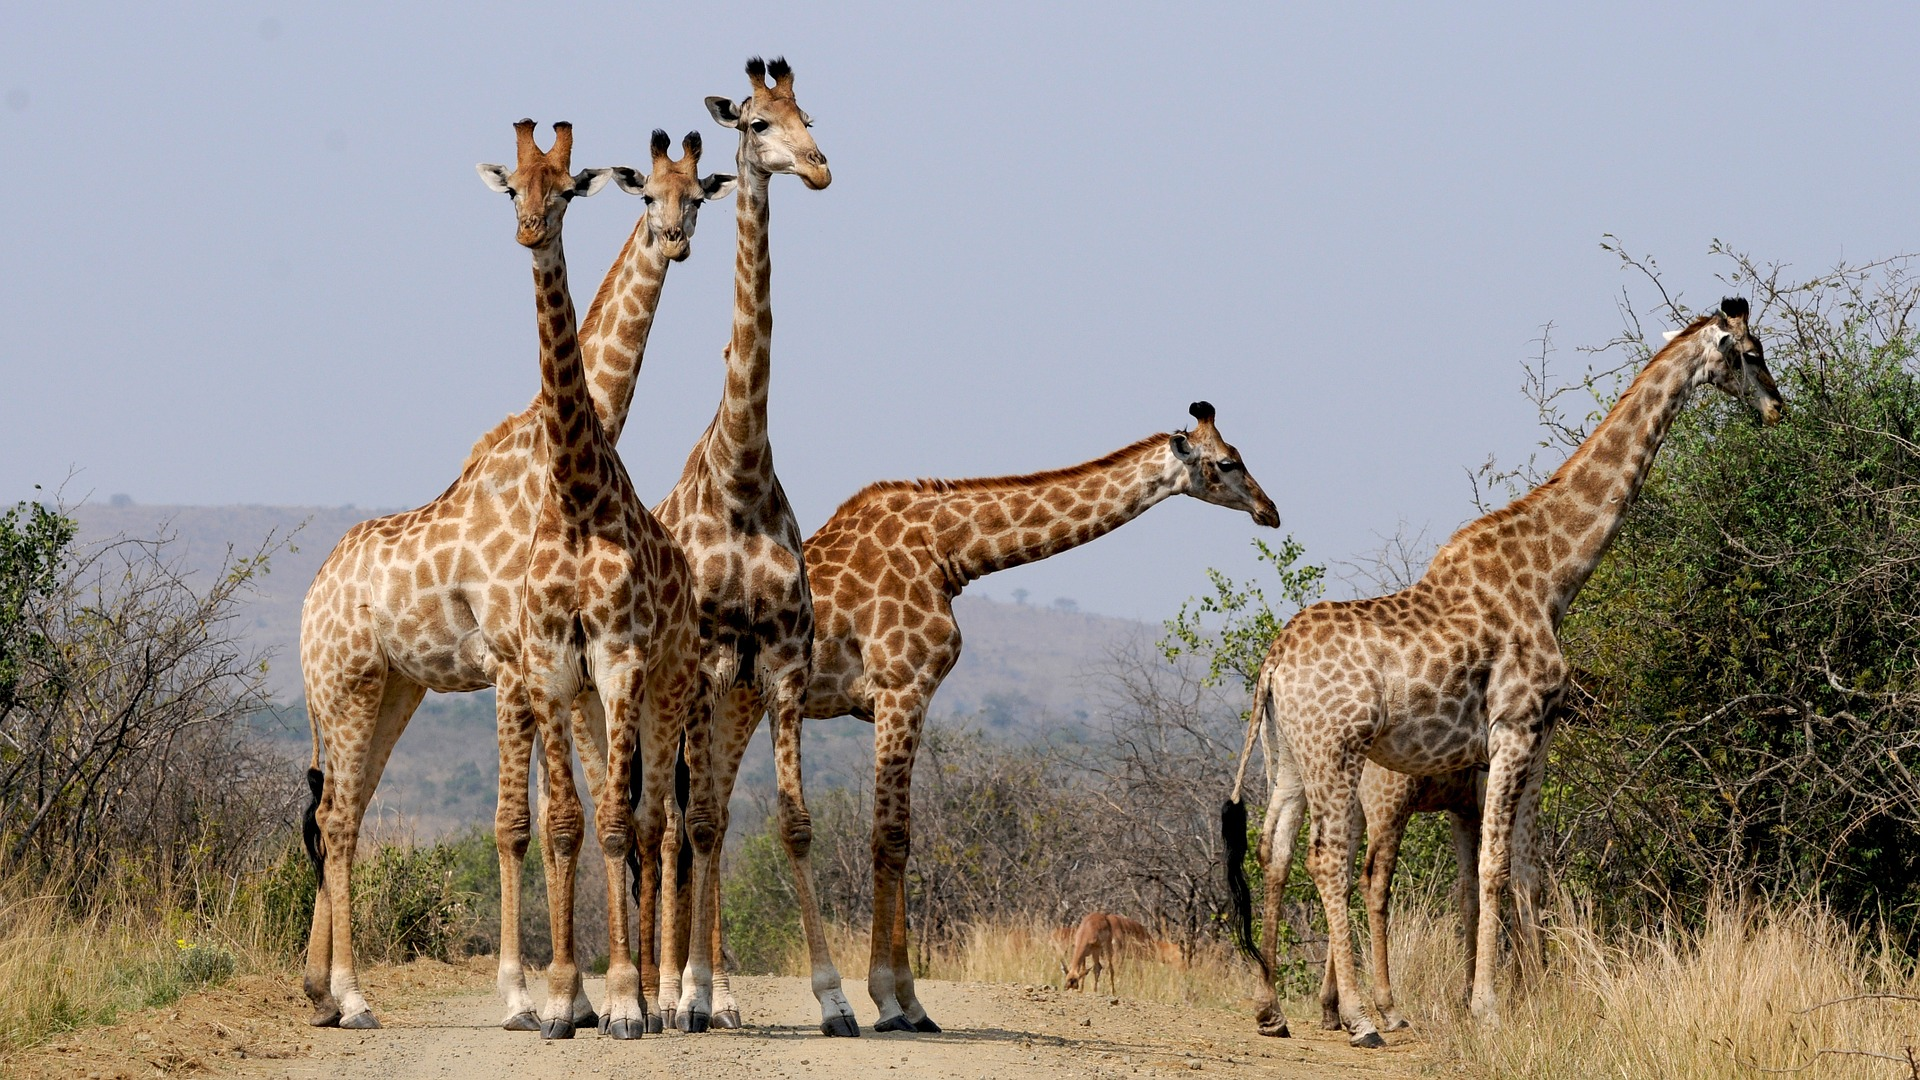 South Africa giraffes spotted on safari.